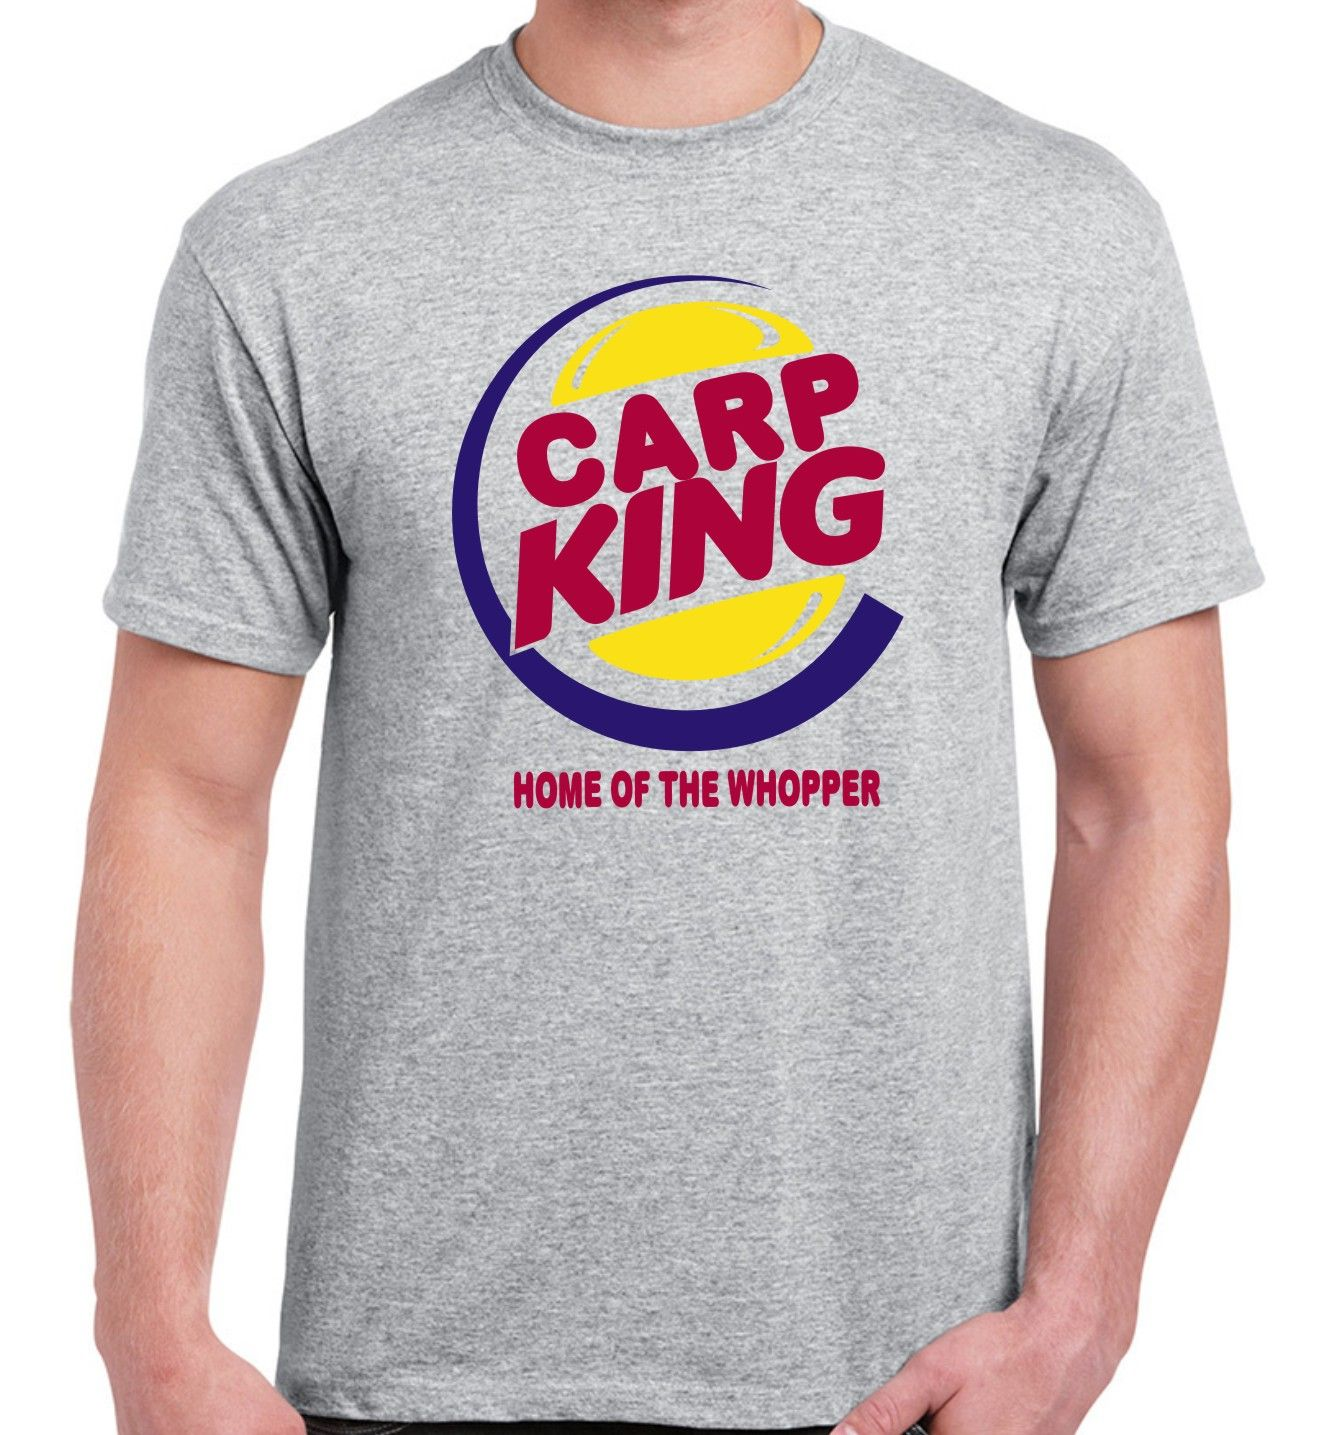 Carp king fishing T-shirt | Fishing T-shirts